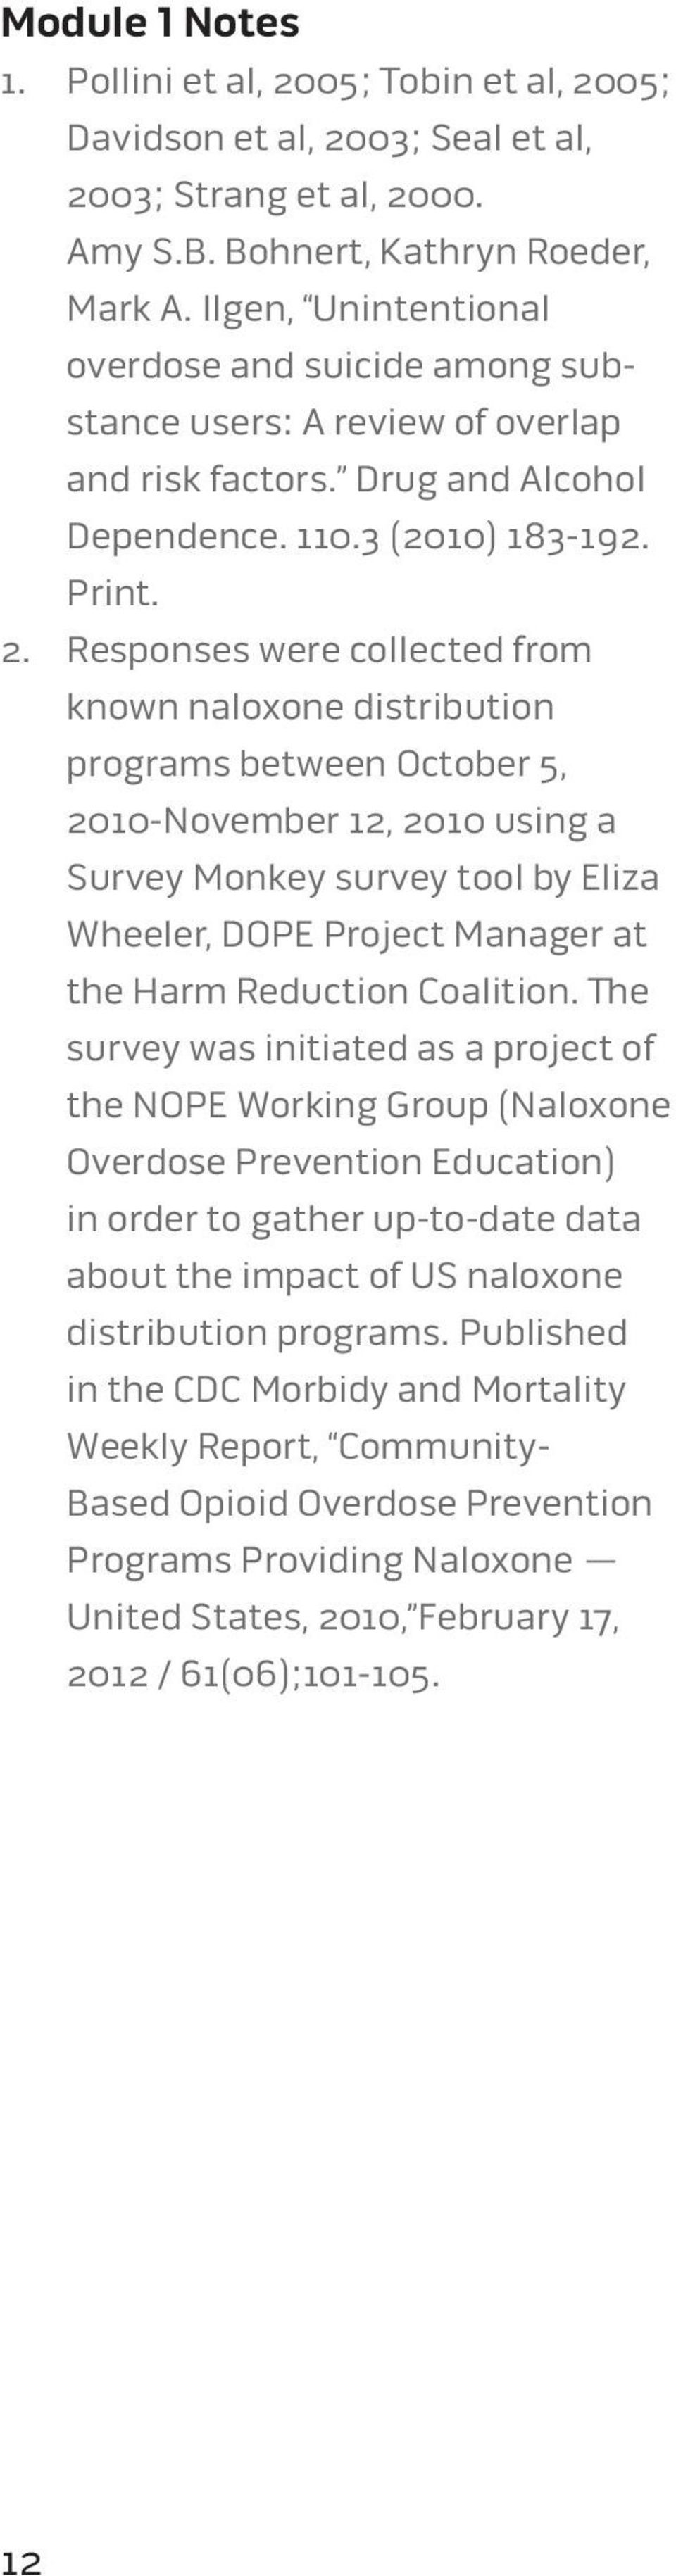 Responses were collected from known naloxone distribution programs between October 5, 2010-November 12, 2010 using a Survey Monkey survey tool by Eliza Wheeler, DOPE Project Manager at the Harm